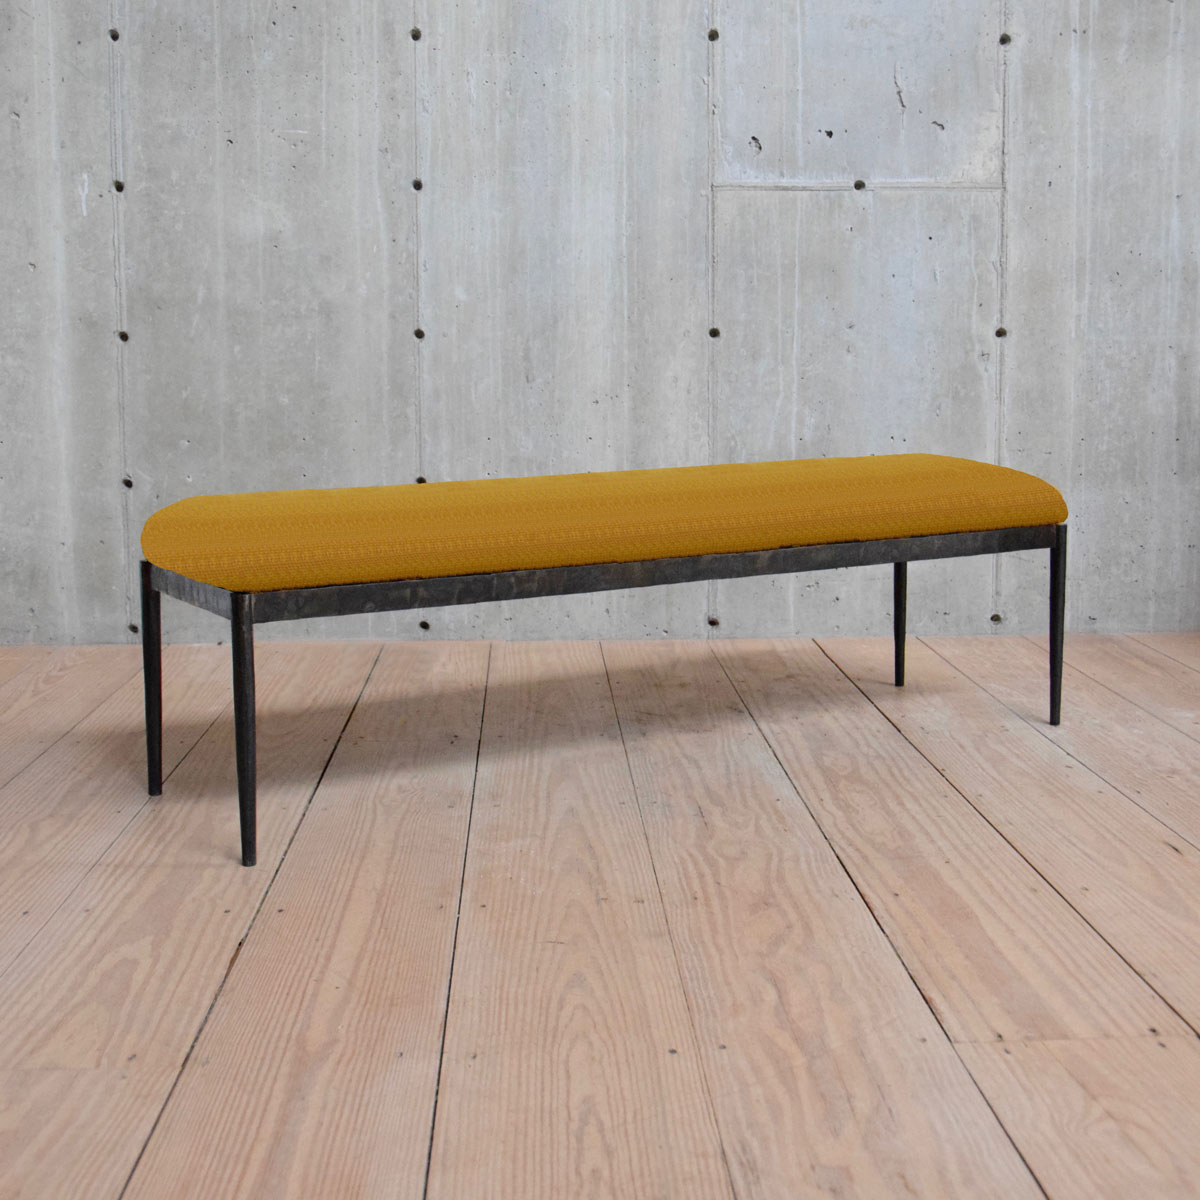 Monaco Style Bench with Upholstered Seat $2,800